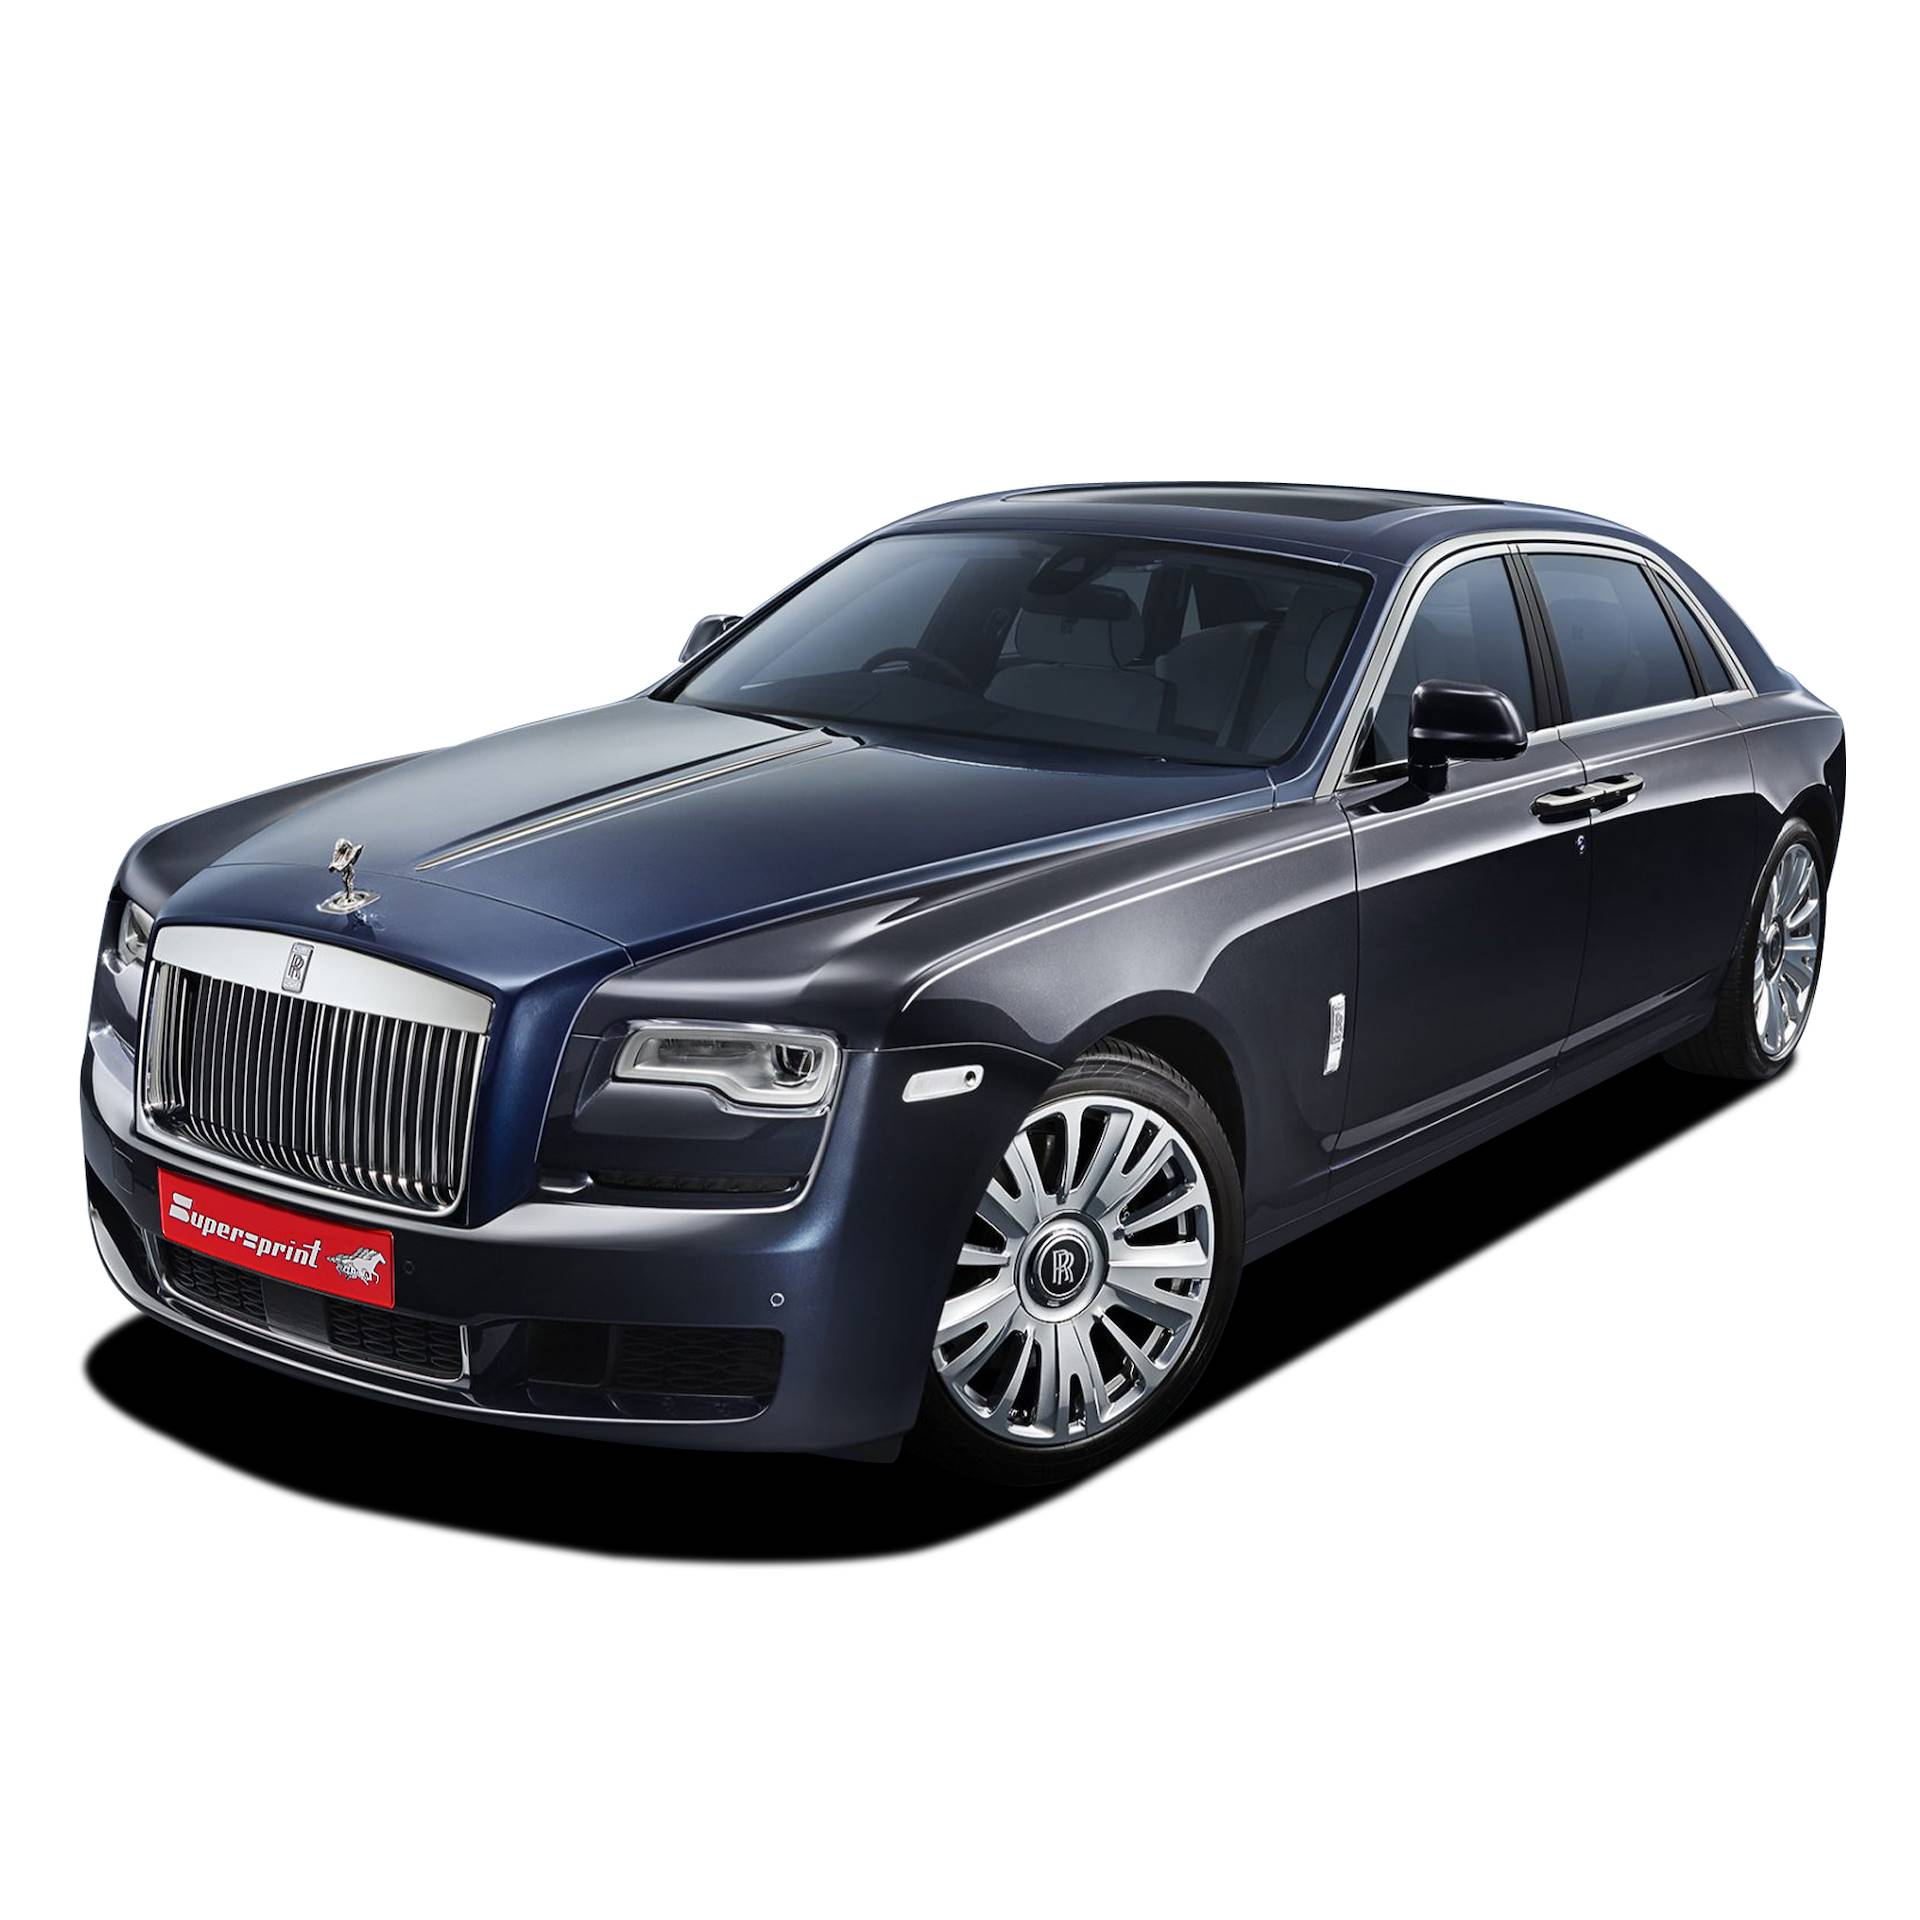 ROLLS ROYCE Ghost 6.6L V12 Bi-Turbo 2008 -> 2018